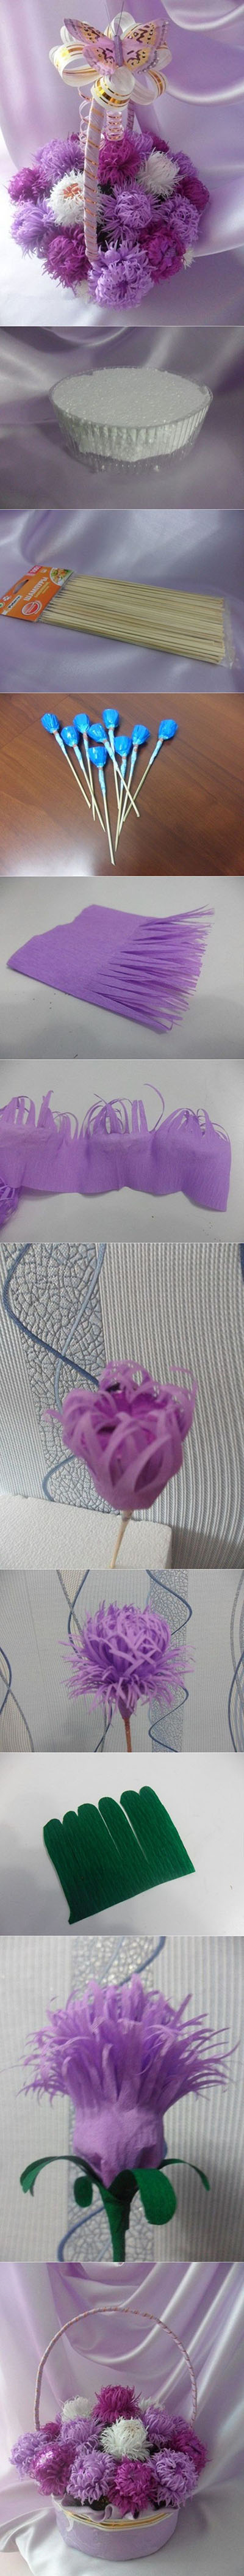 17 Flower bouquet tutorials48686b4